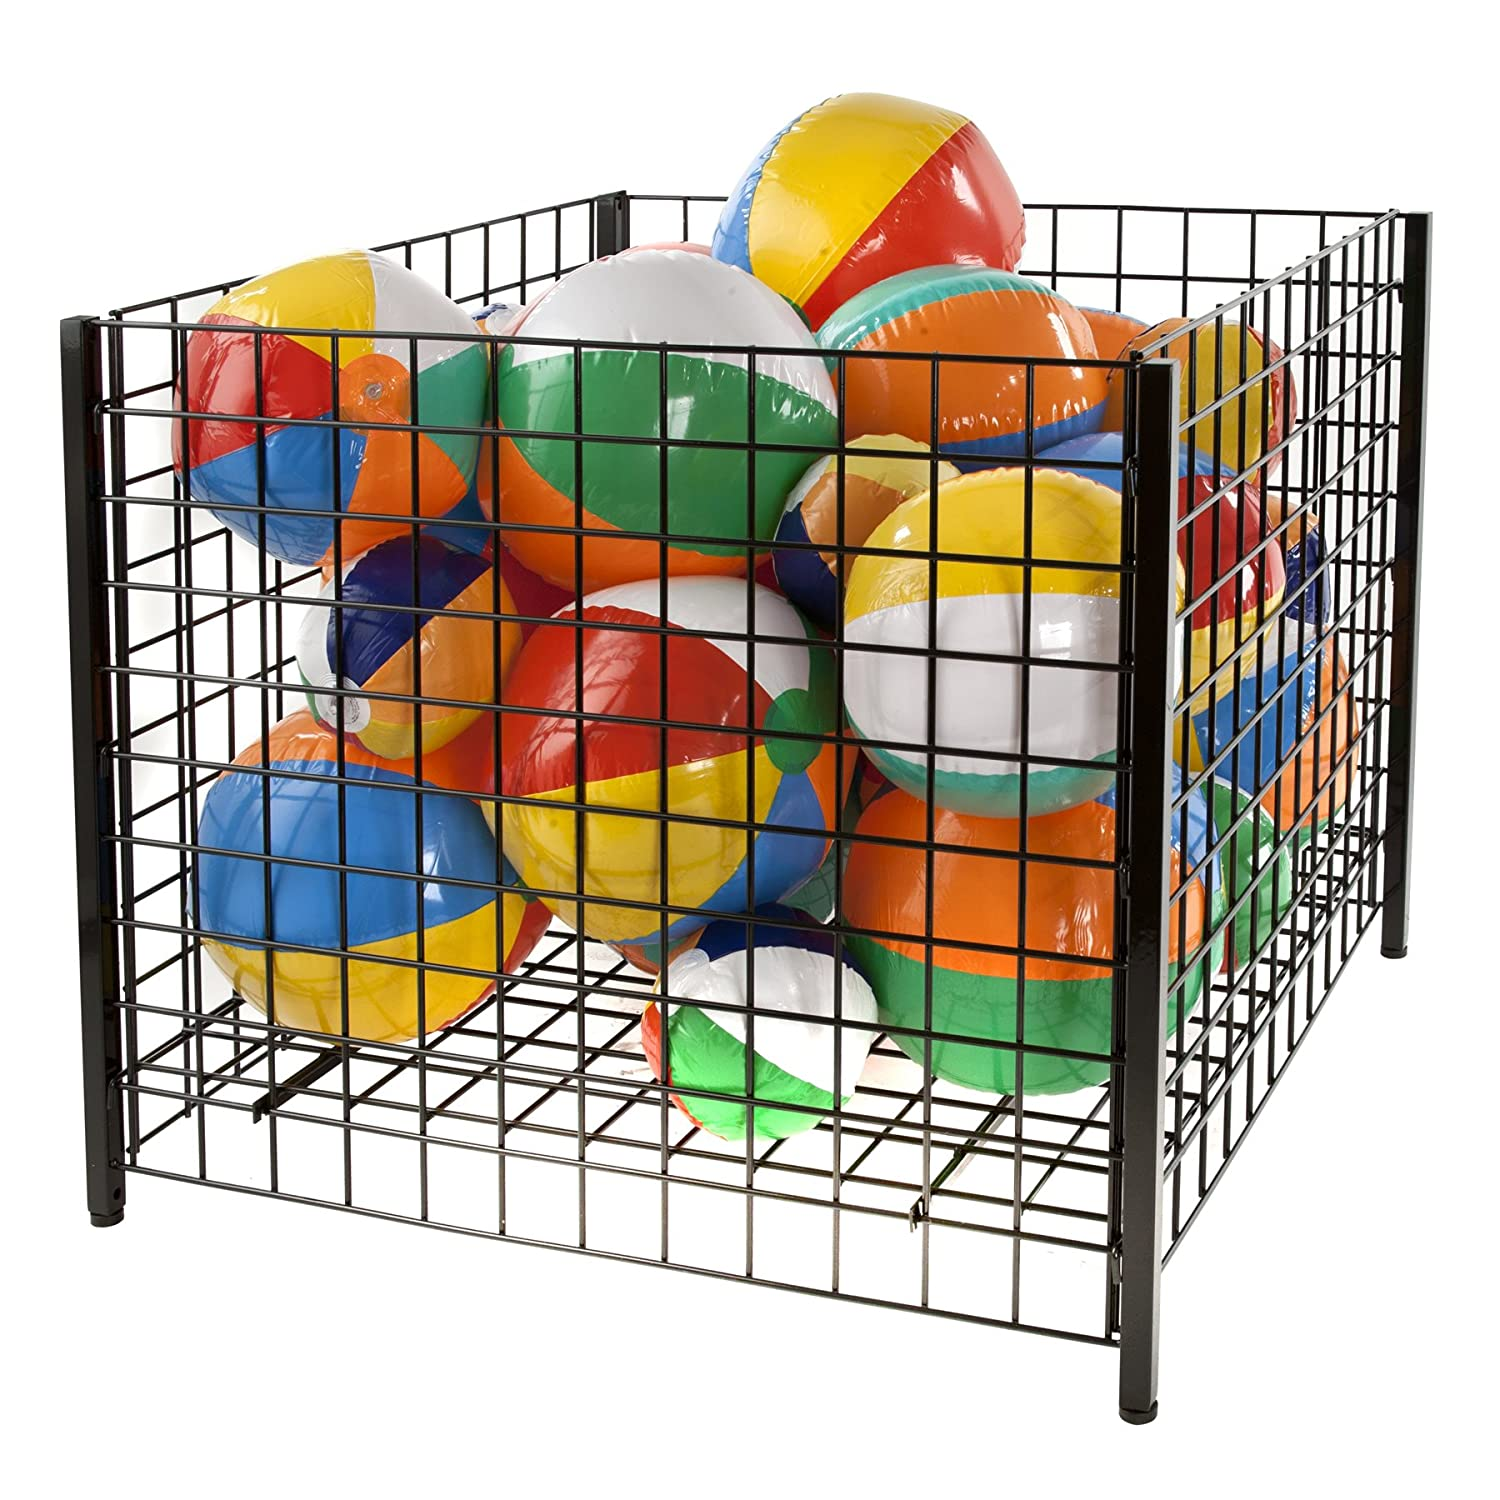 Bombing new work Econoco Grid Recommendation Dump Bin with 36